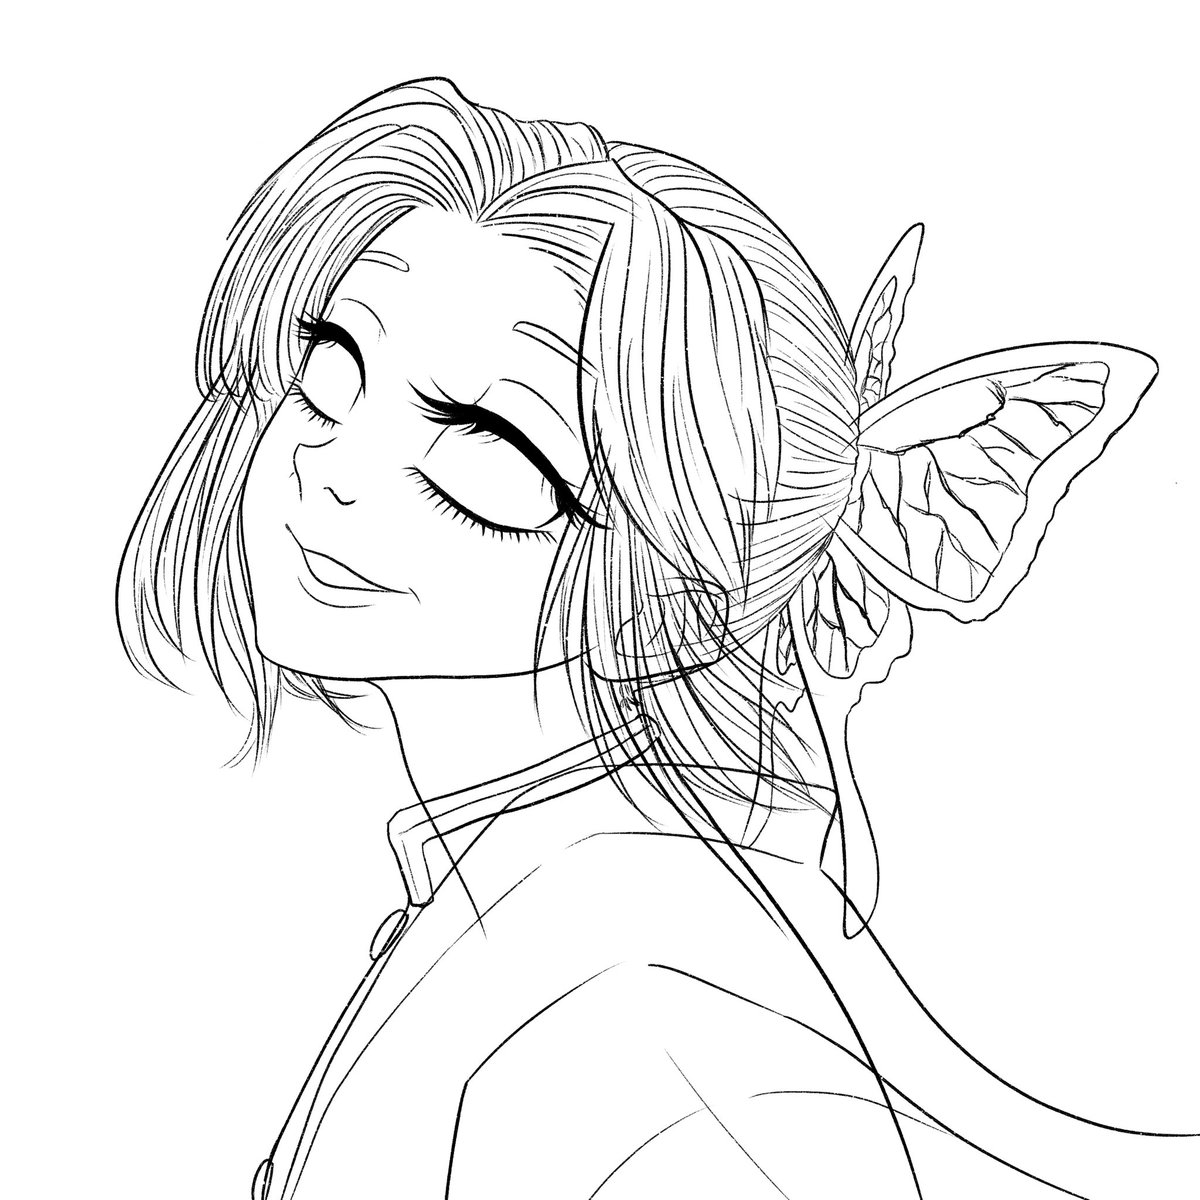 Update: Finished the lineart! 🦋